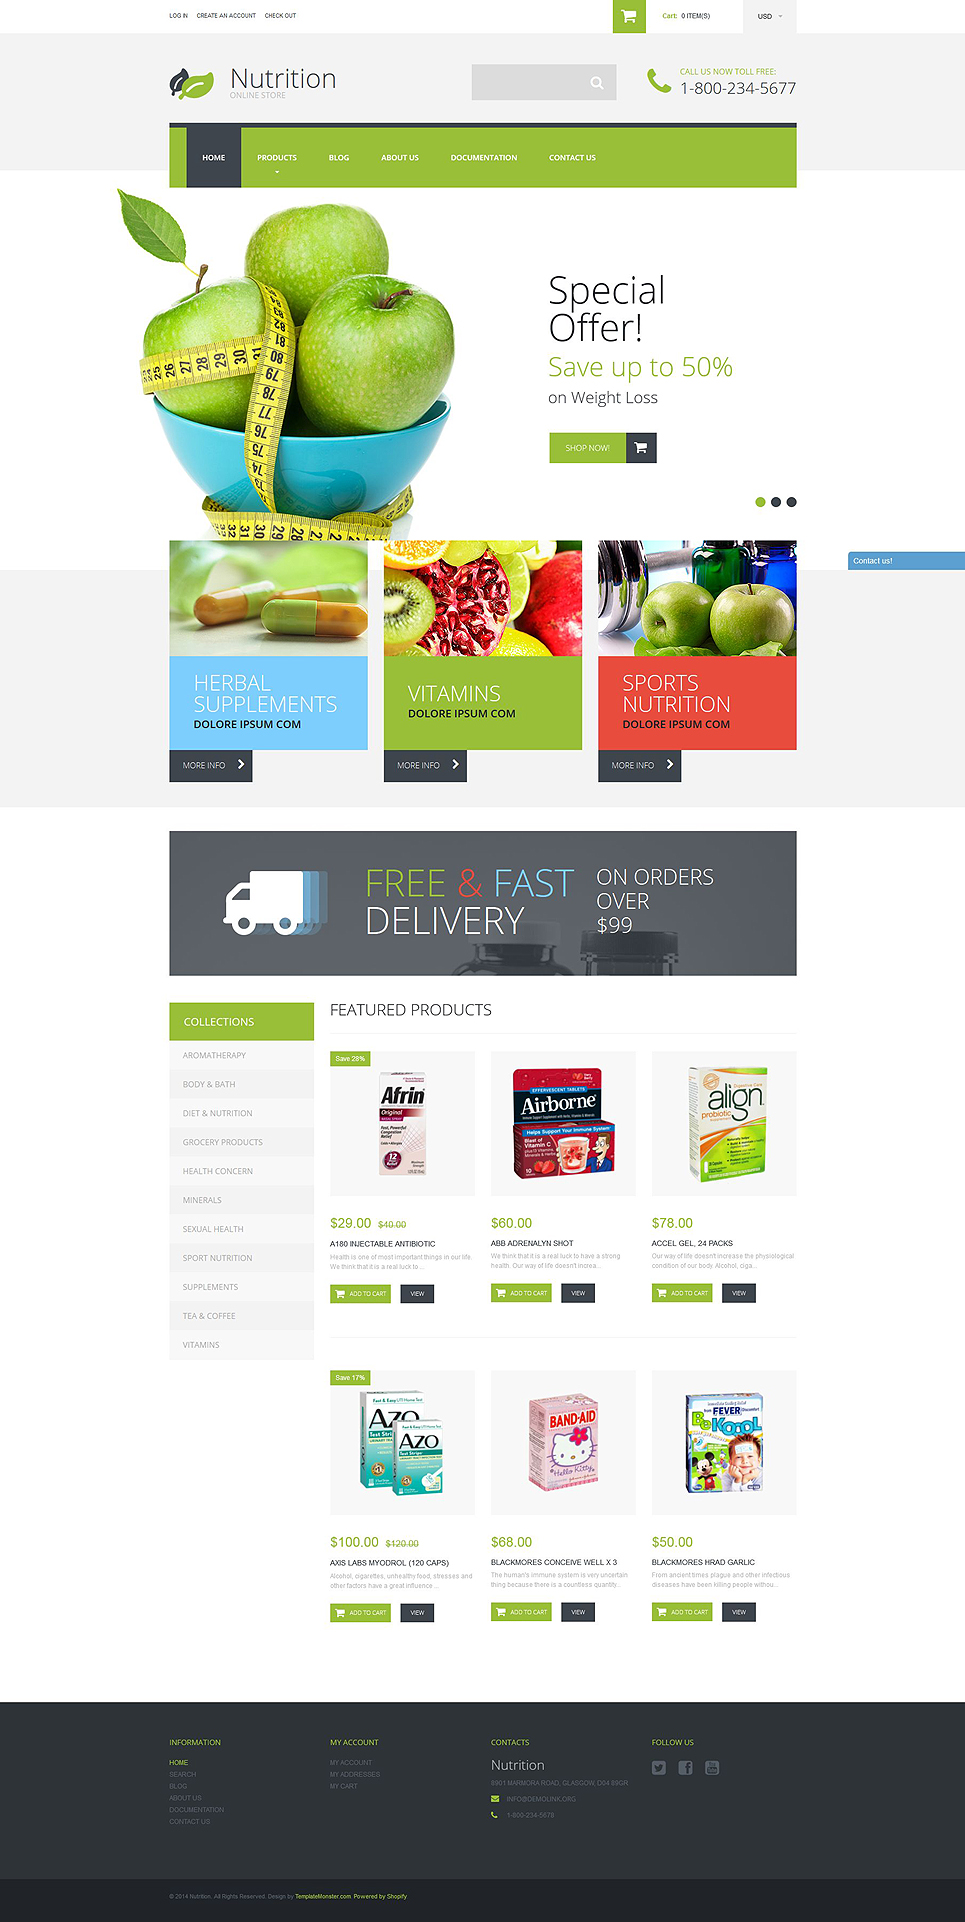 Nutrition Supplements (ecommerce website theme) Item Picture